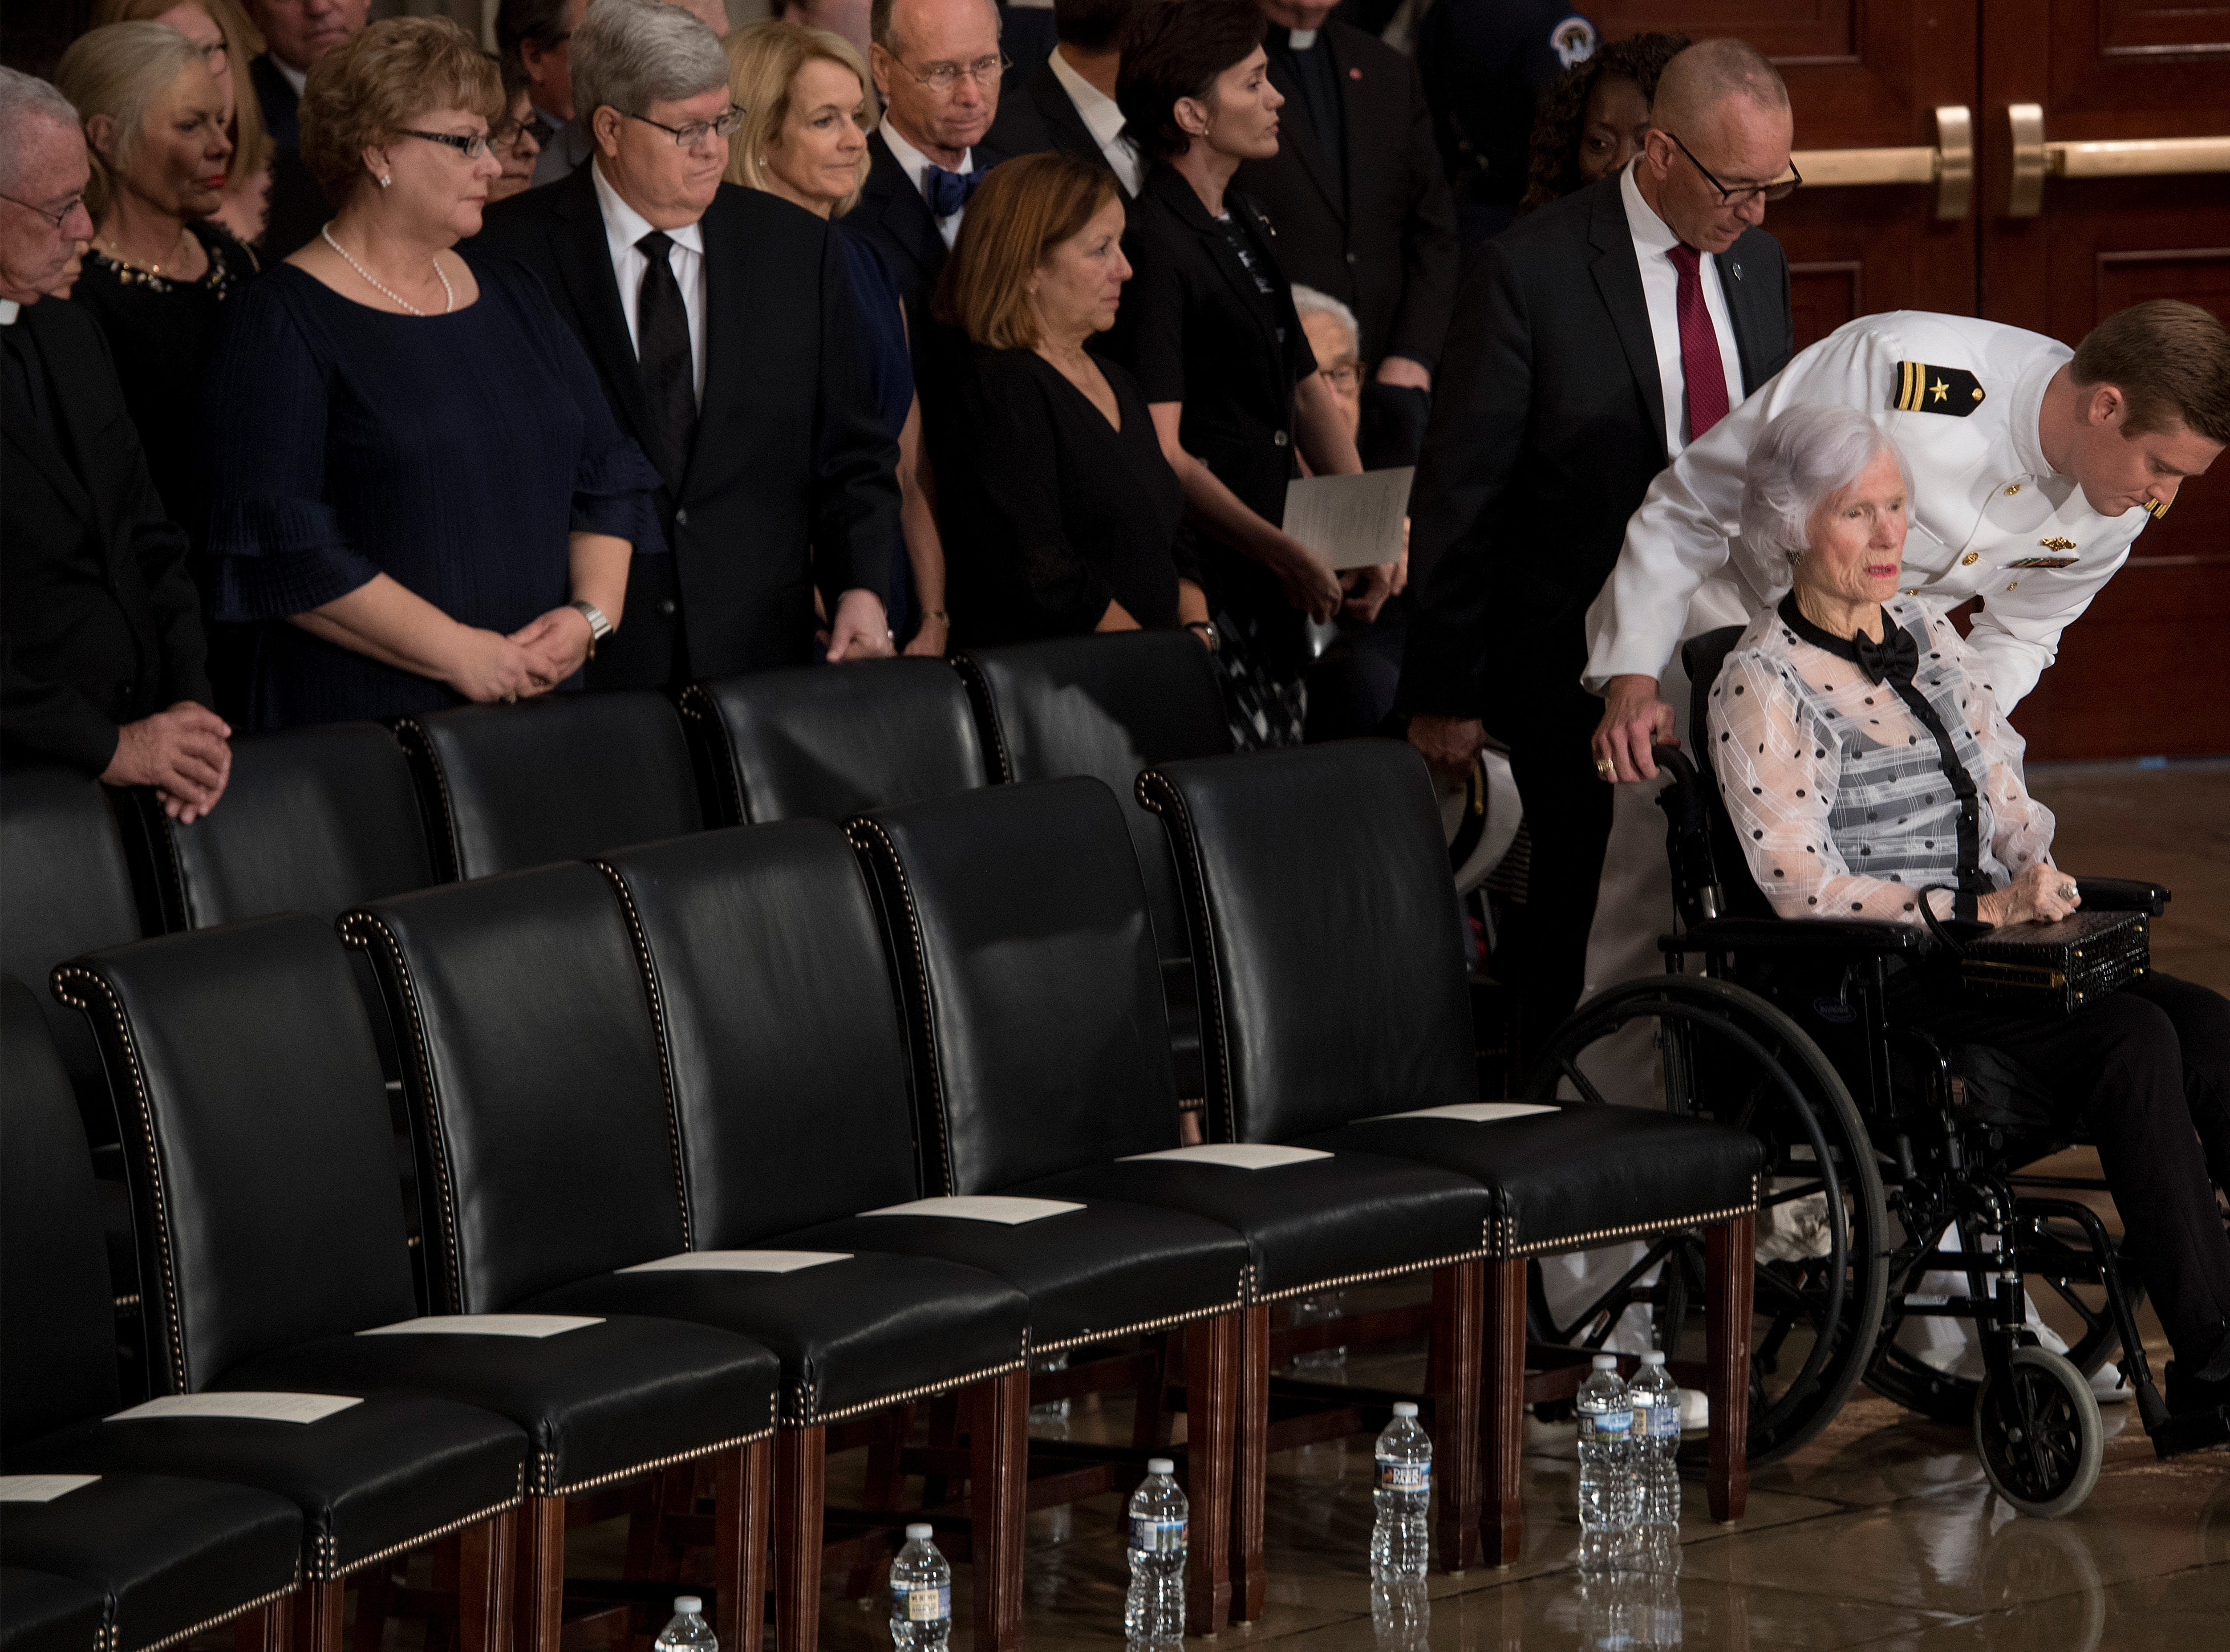 Roberta McCain, the 106-year-old mother of Sen. John McCain, R-Ariz., arrives at his memorial Aug. 31, 2018 in the U.S. Capitol in Washington.